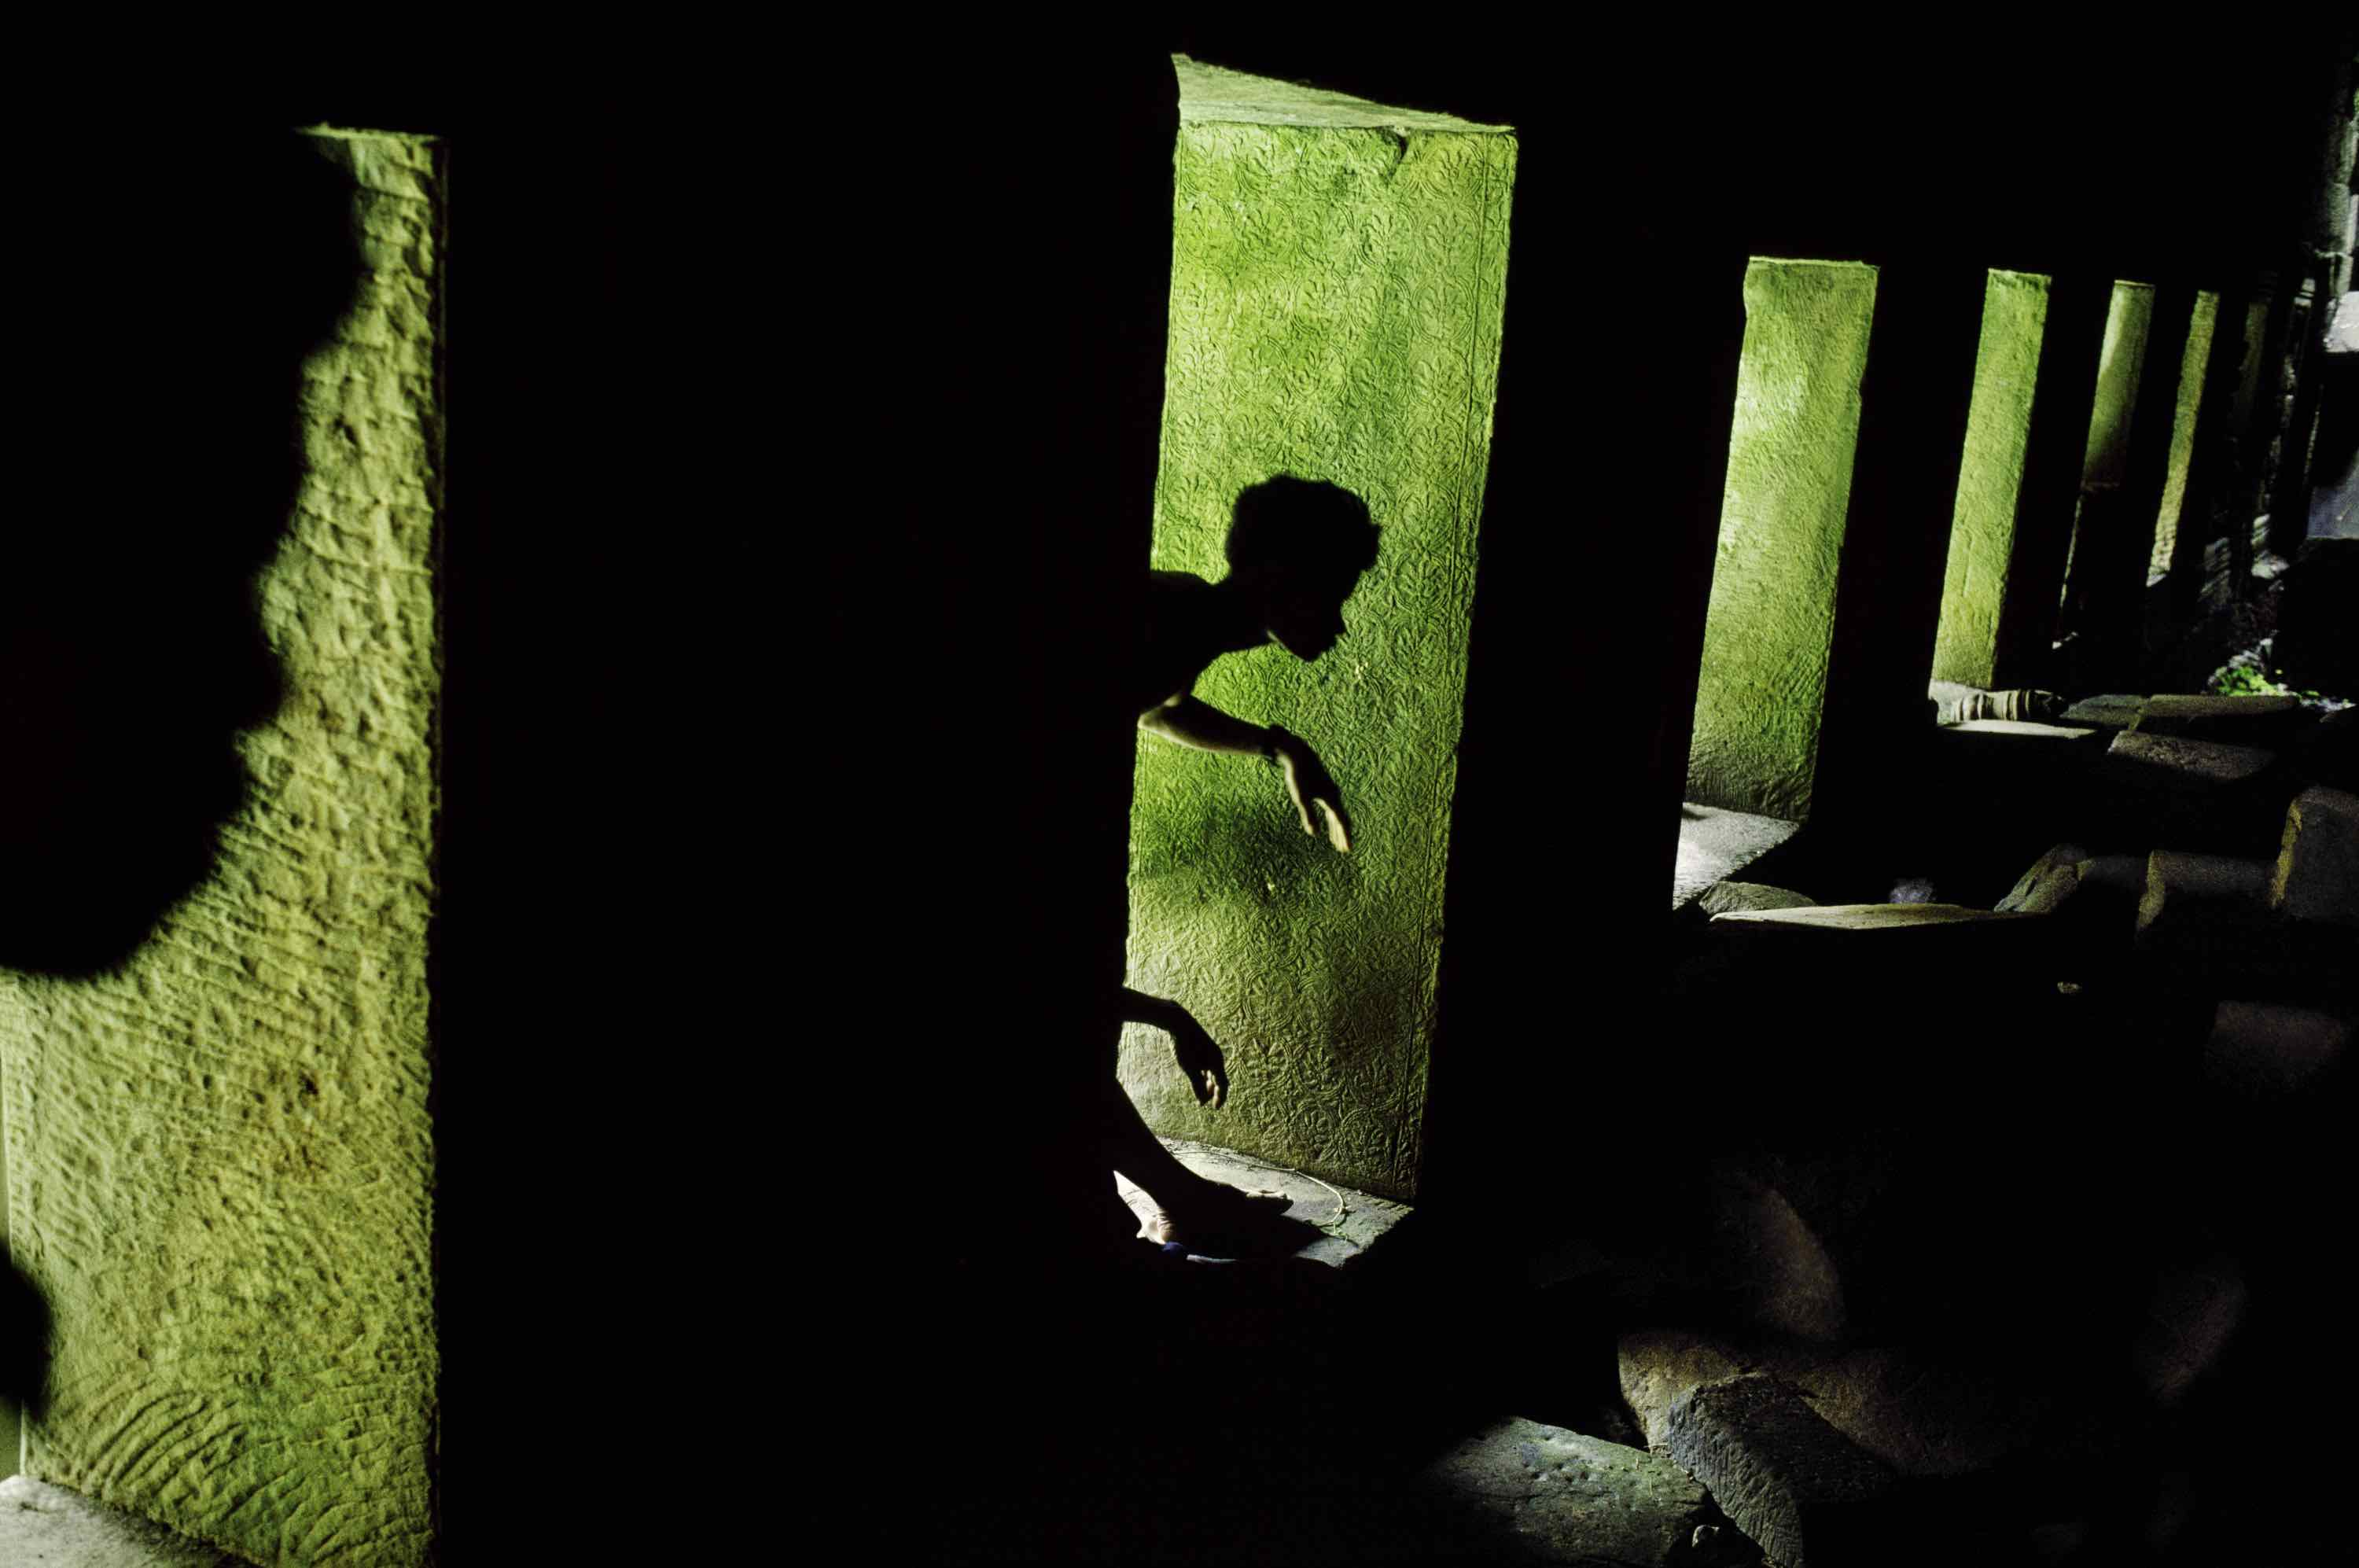 Temple Preah Khan, Angkor, Cambodge, 1999 - Photo : Steve McCurry